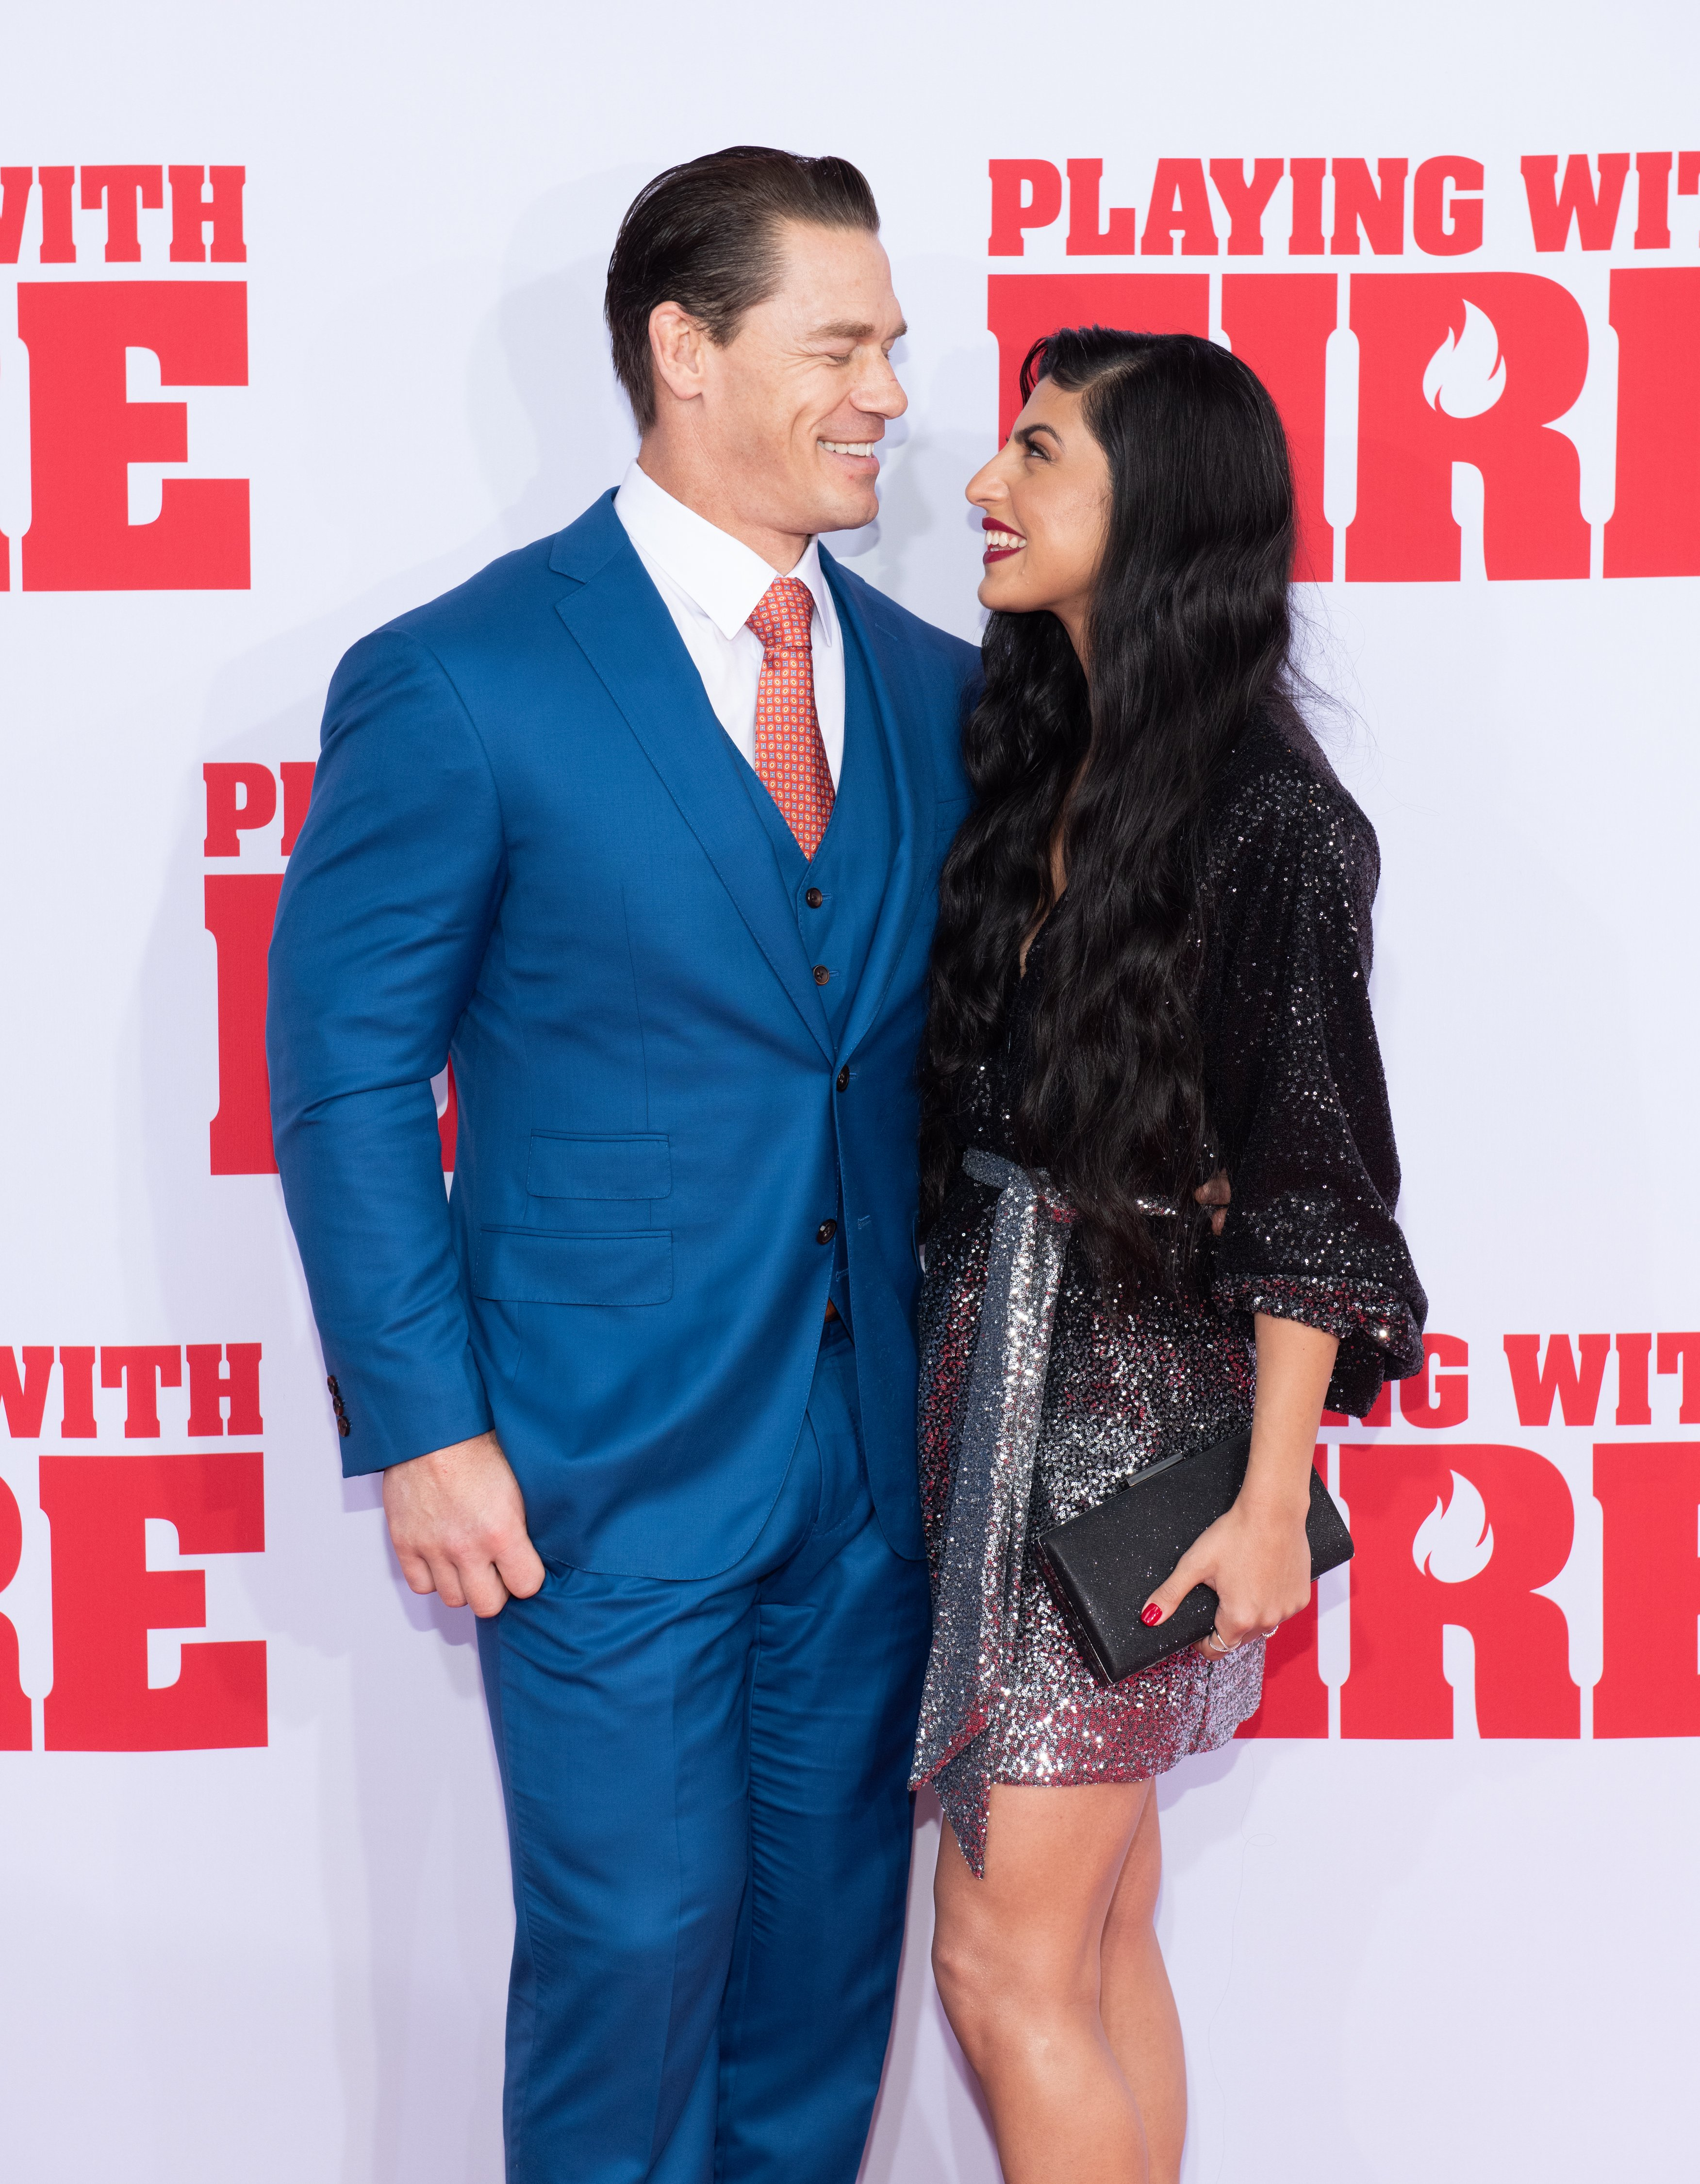 """John Cena and Shay Shariatzadeh attend the """"Playing With Fire"""" New York premiere at AMC Lincoln Square Theater on October 26, 2019, in New York City. 